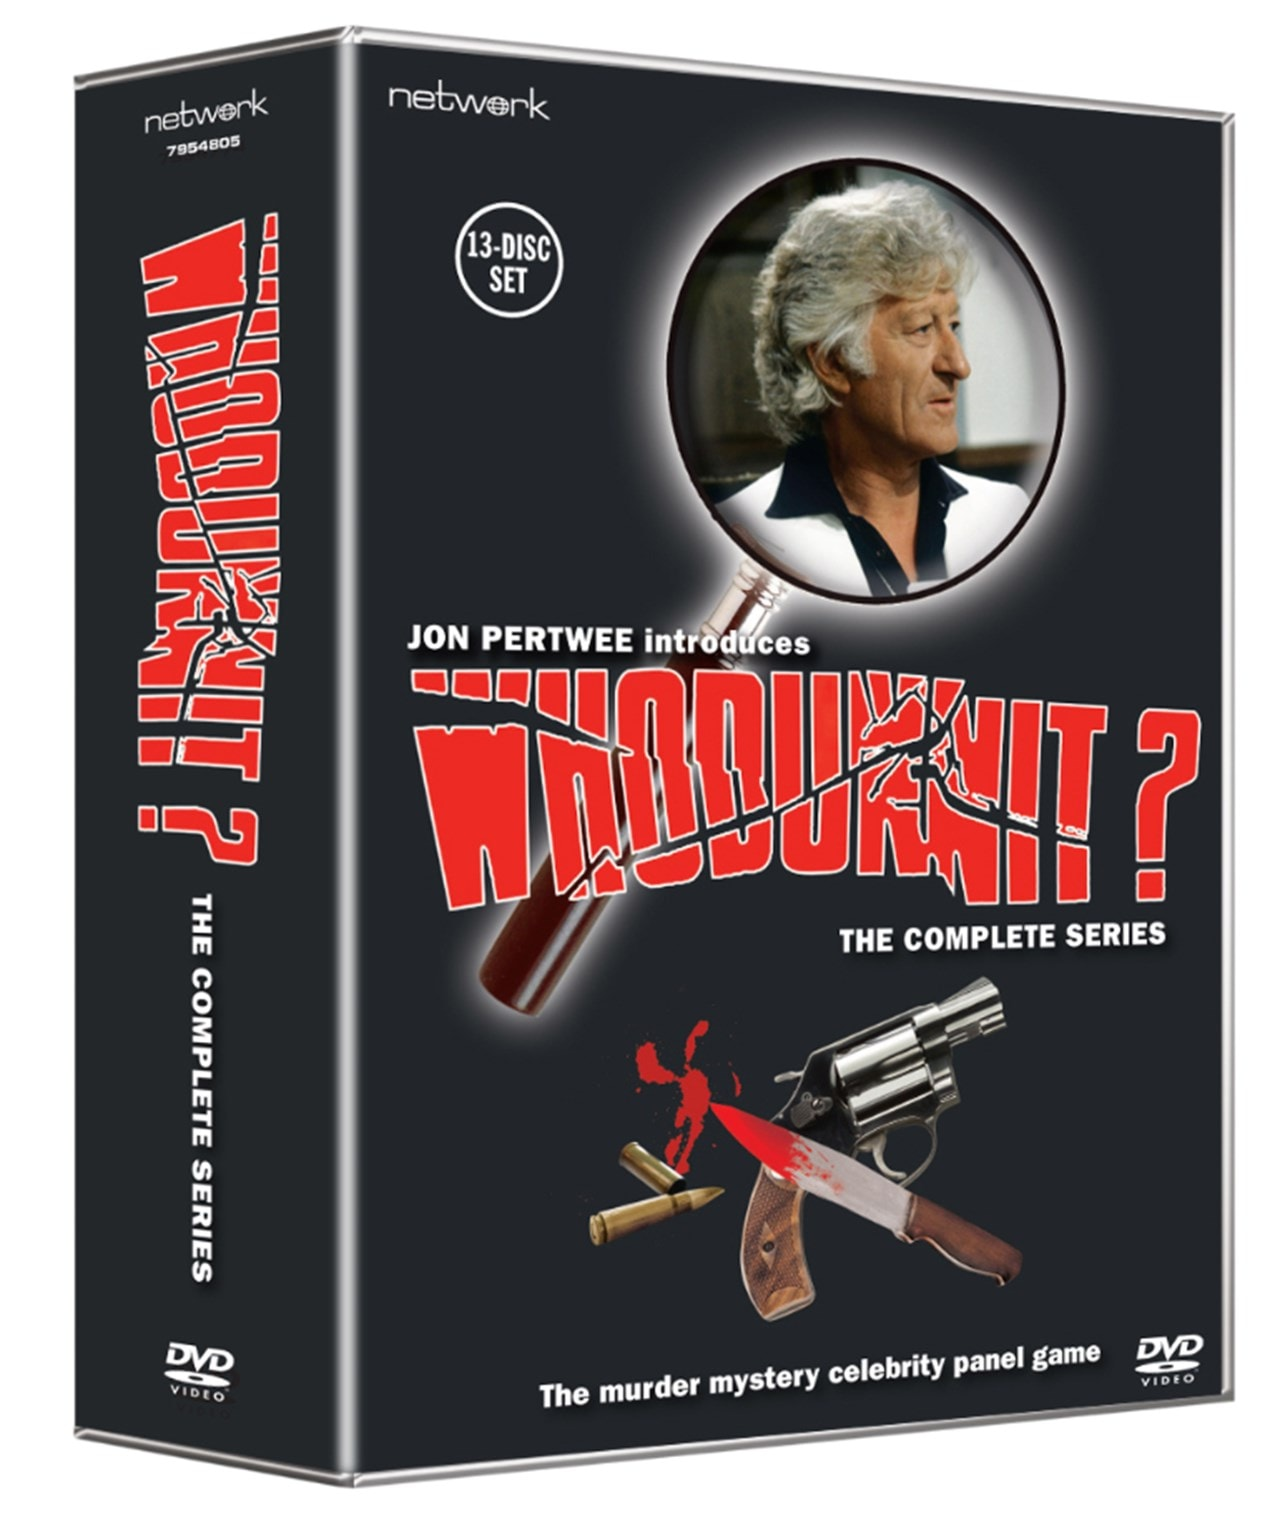 Whodunnit: The Complete Series - 2